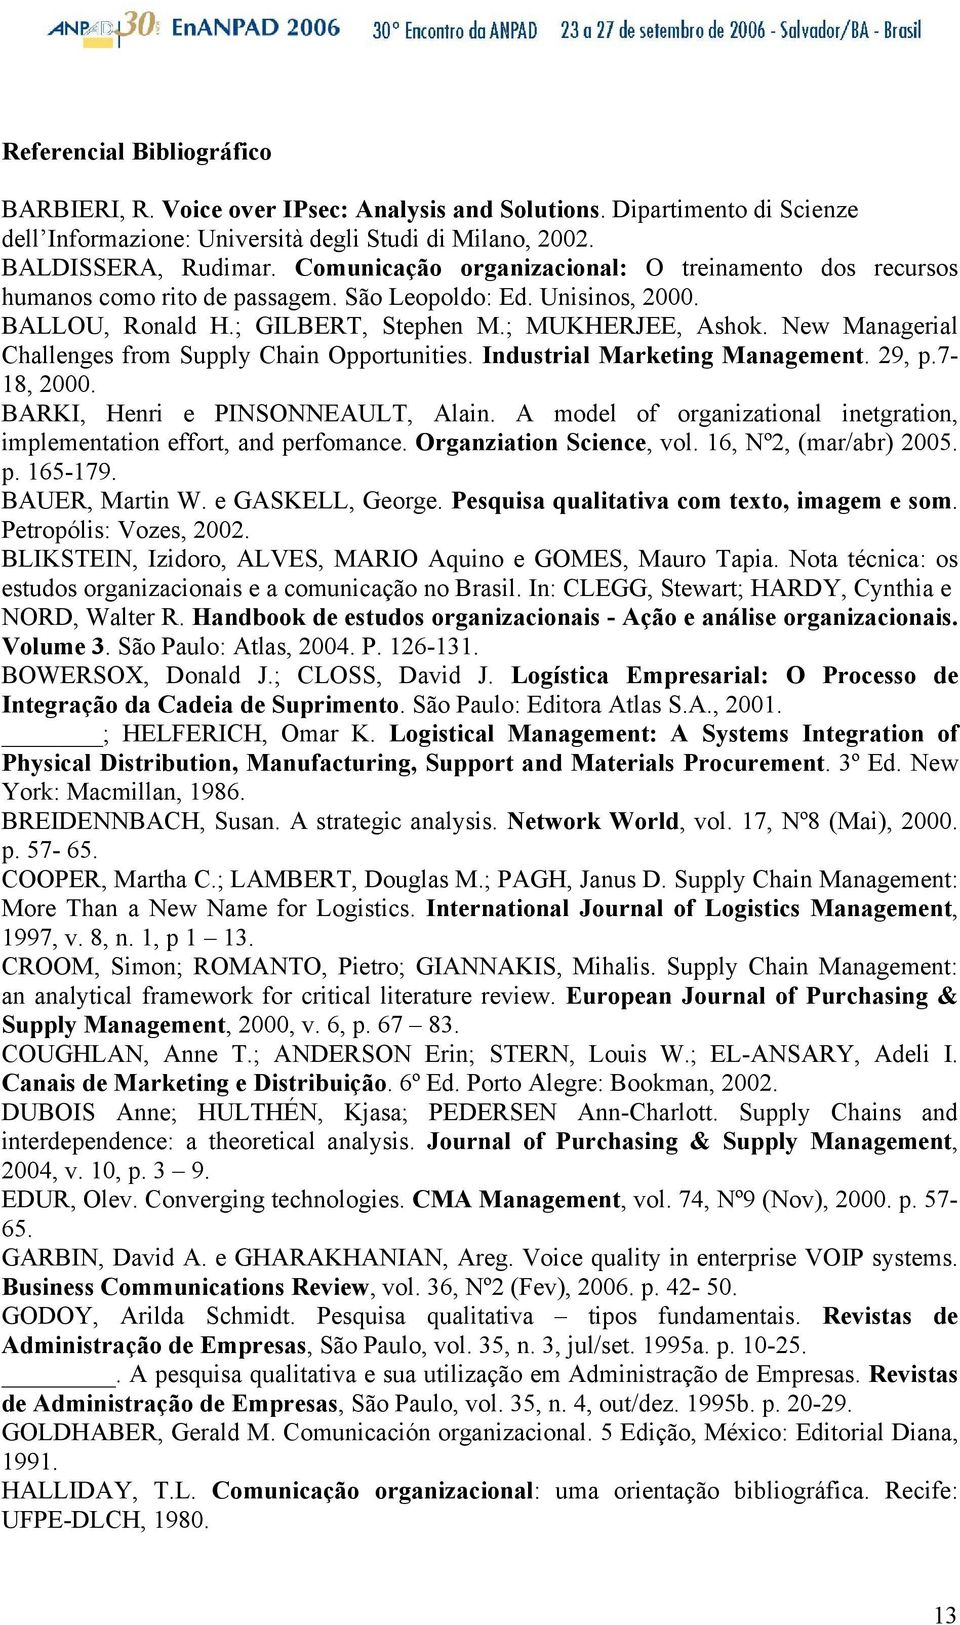 New Managerial Challenges from Supply Chain Opportunities. Industrial Marketing Management. 29, p.7-18, 2000. BARKI, Henri e PINSONNEAULT, Alain.